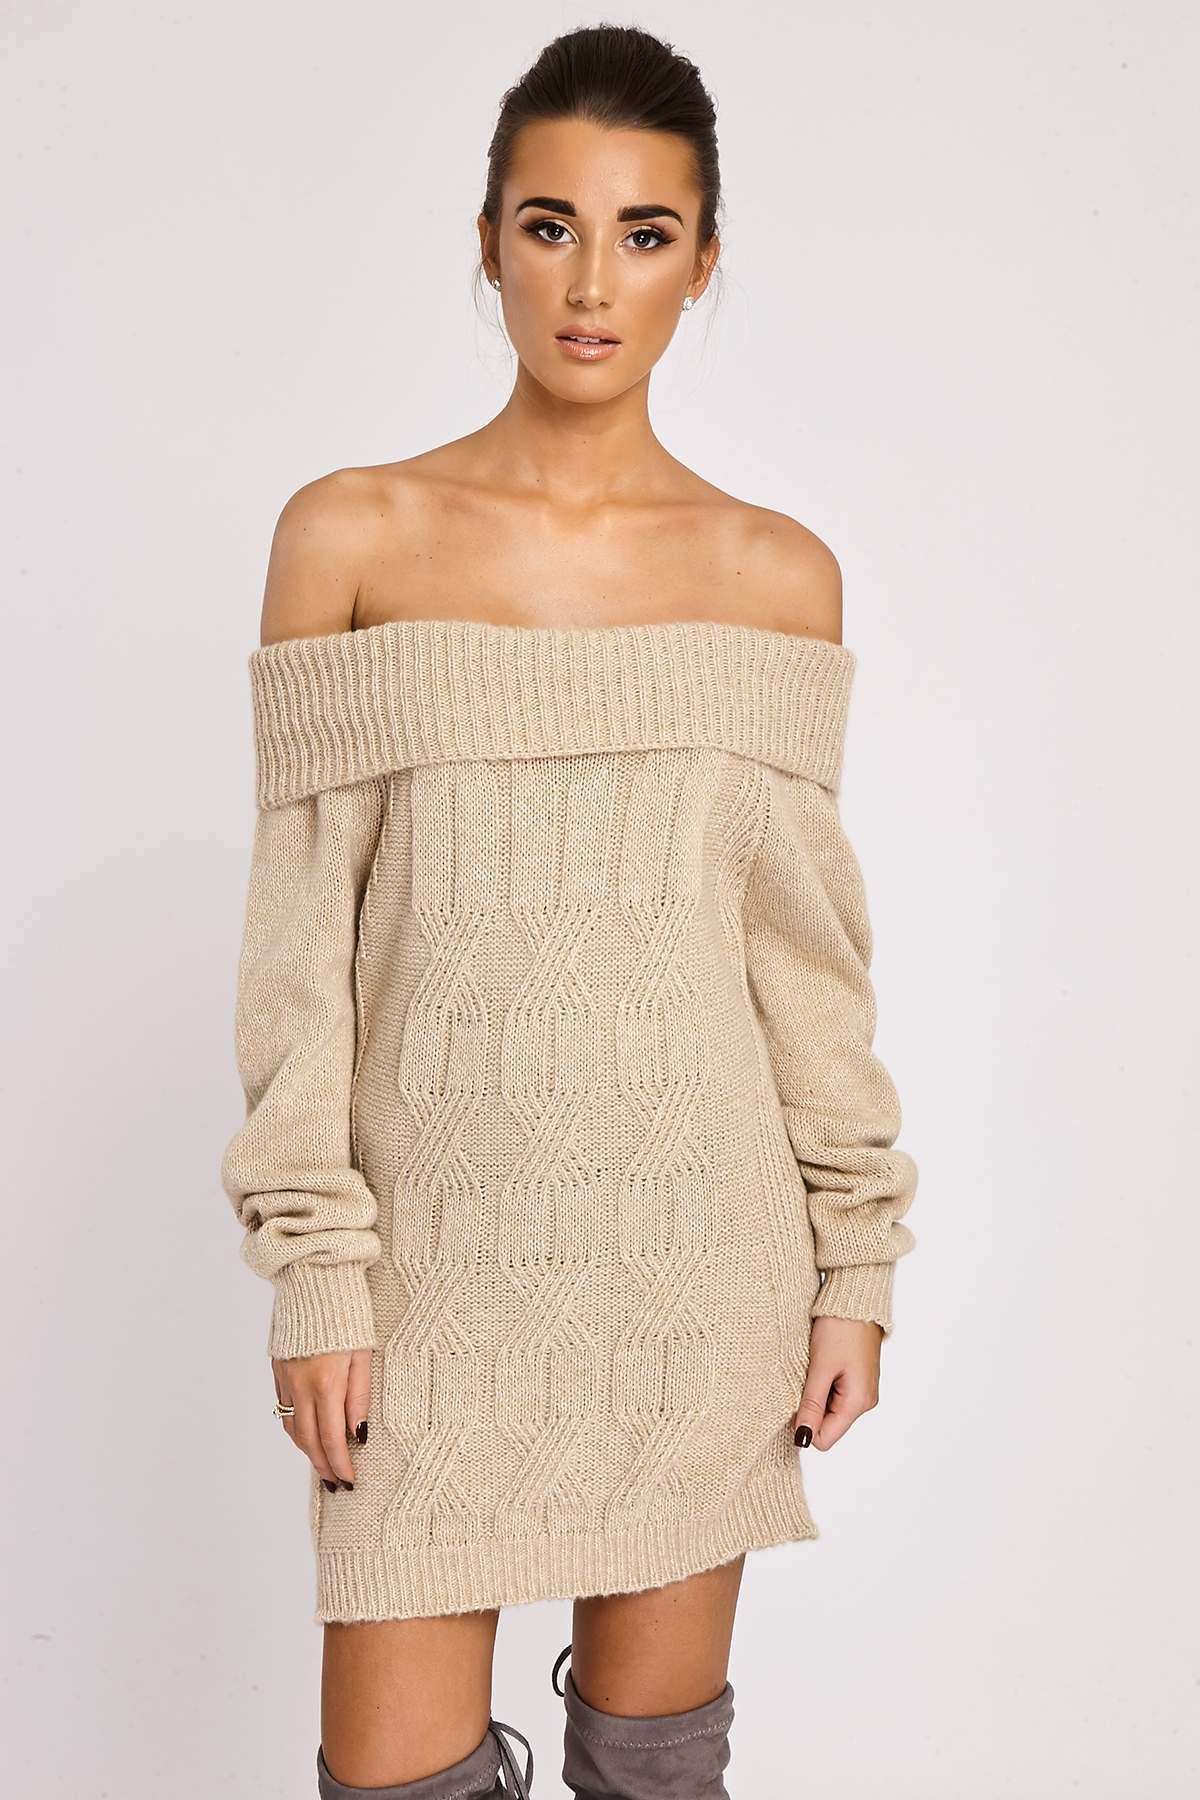 Stone Dresses  Bindi Stone Off Shoulder Knitted Dress